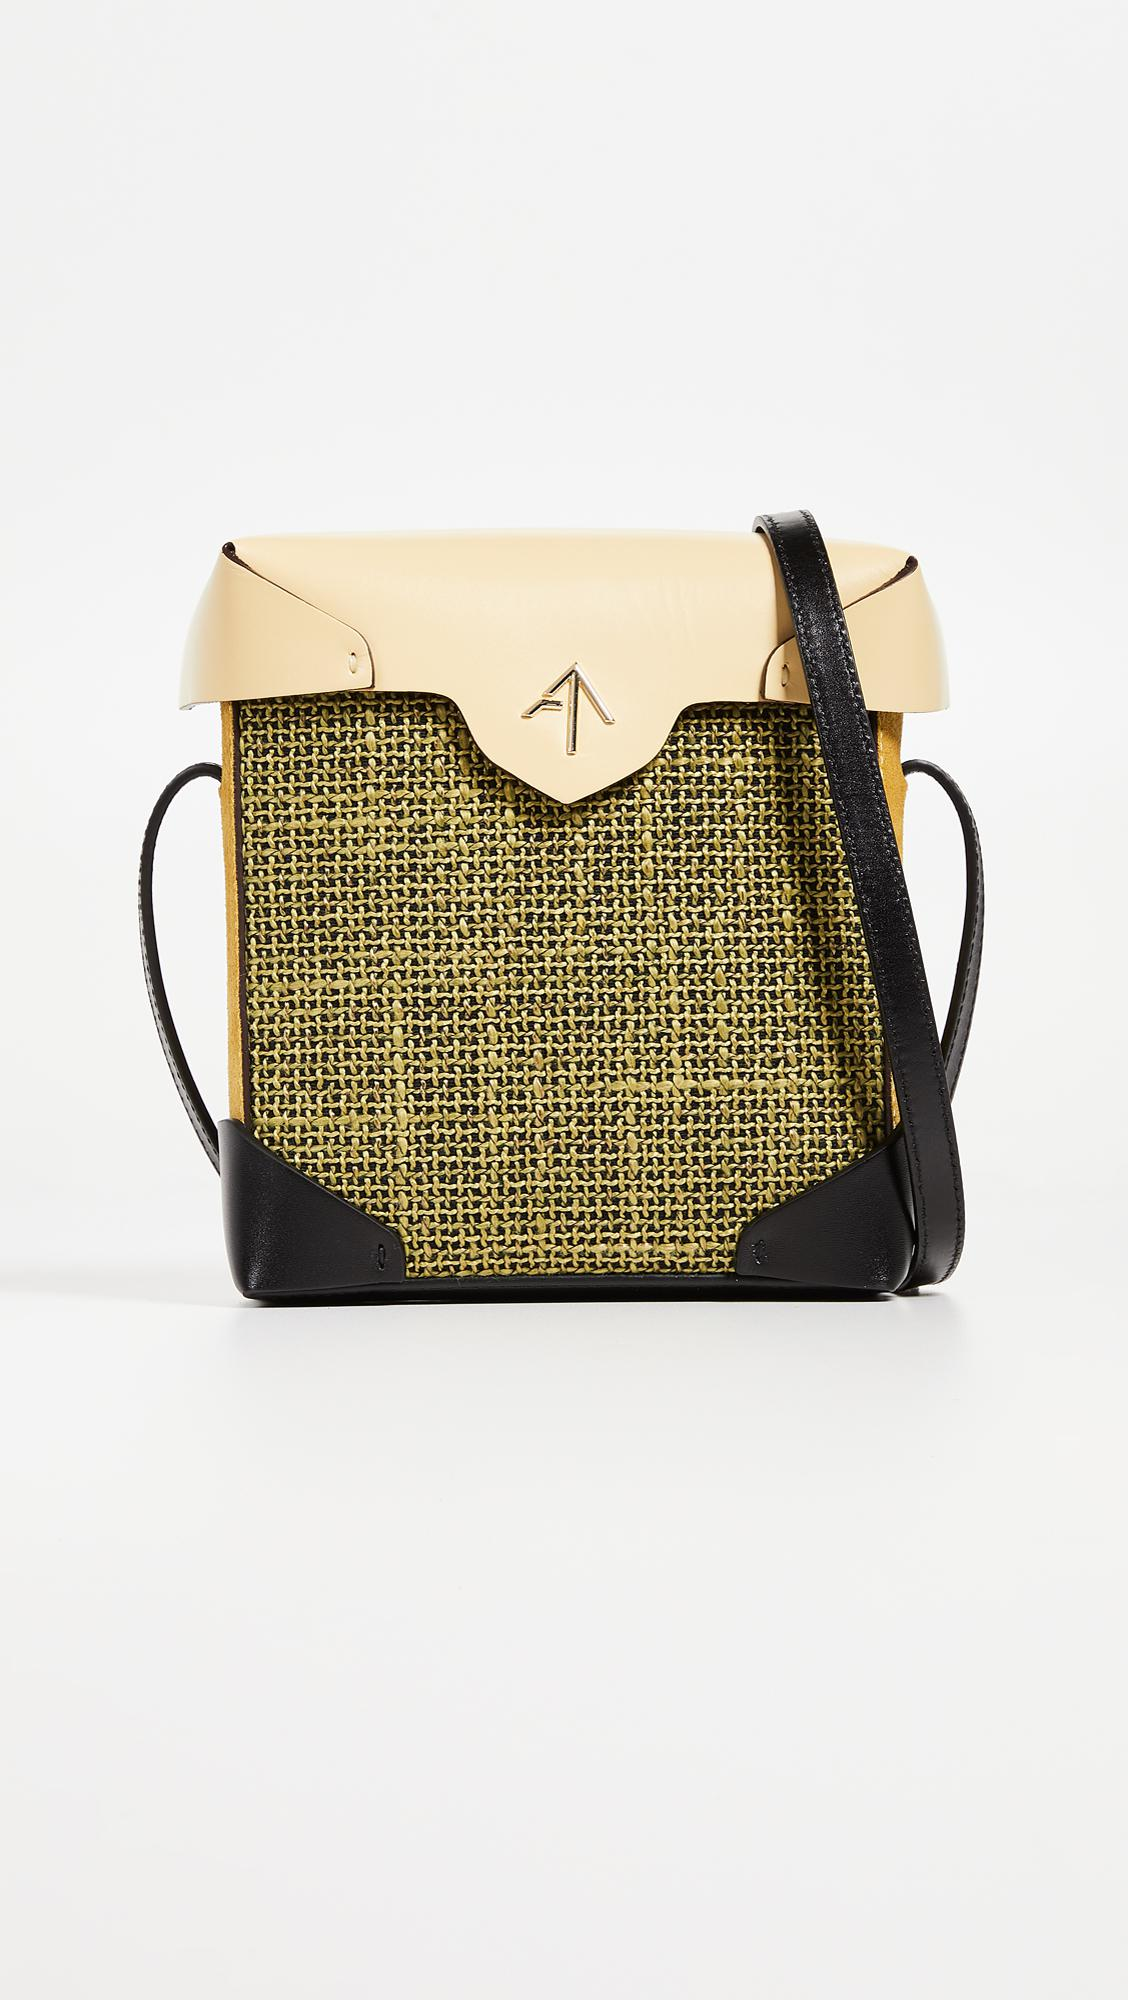 Mini Pristine Combo Tweed Box Bag Manu Atelier 100% Authentic For Sale 2018 Online Pay With Visa Cheap Online Free Shipping Best Sale Cheap Sale Websites dgzmhM